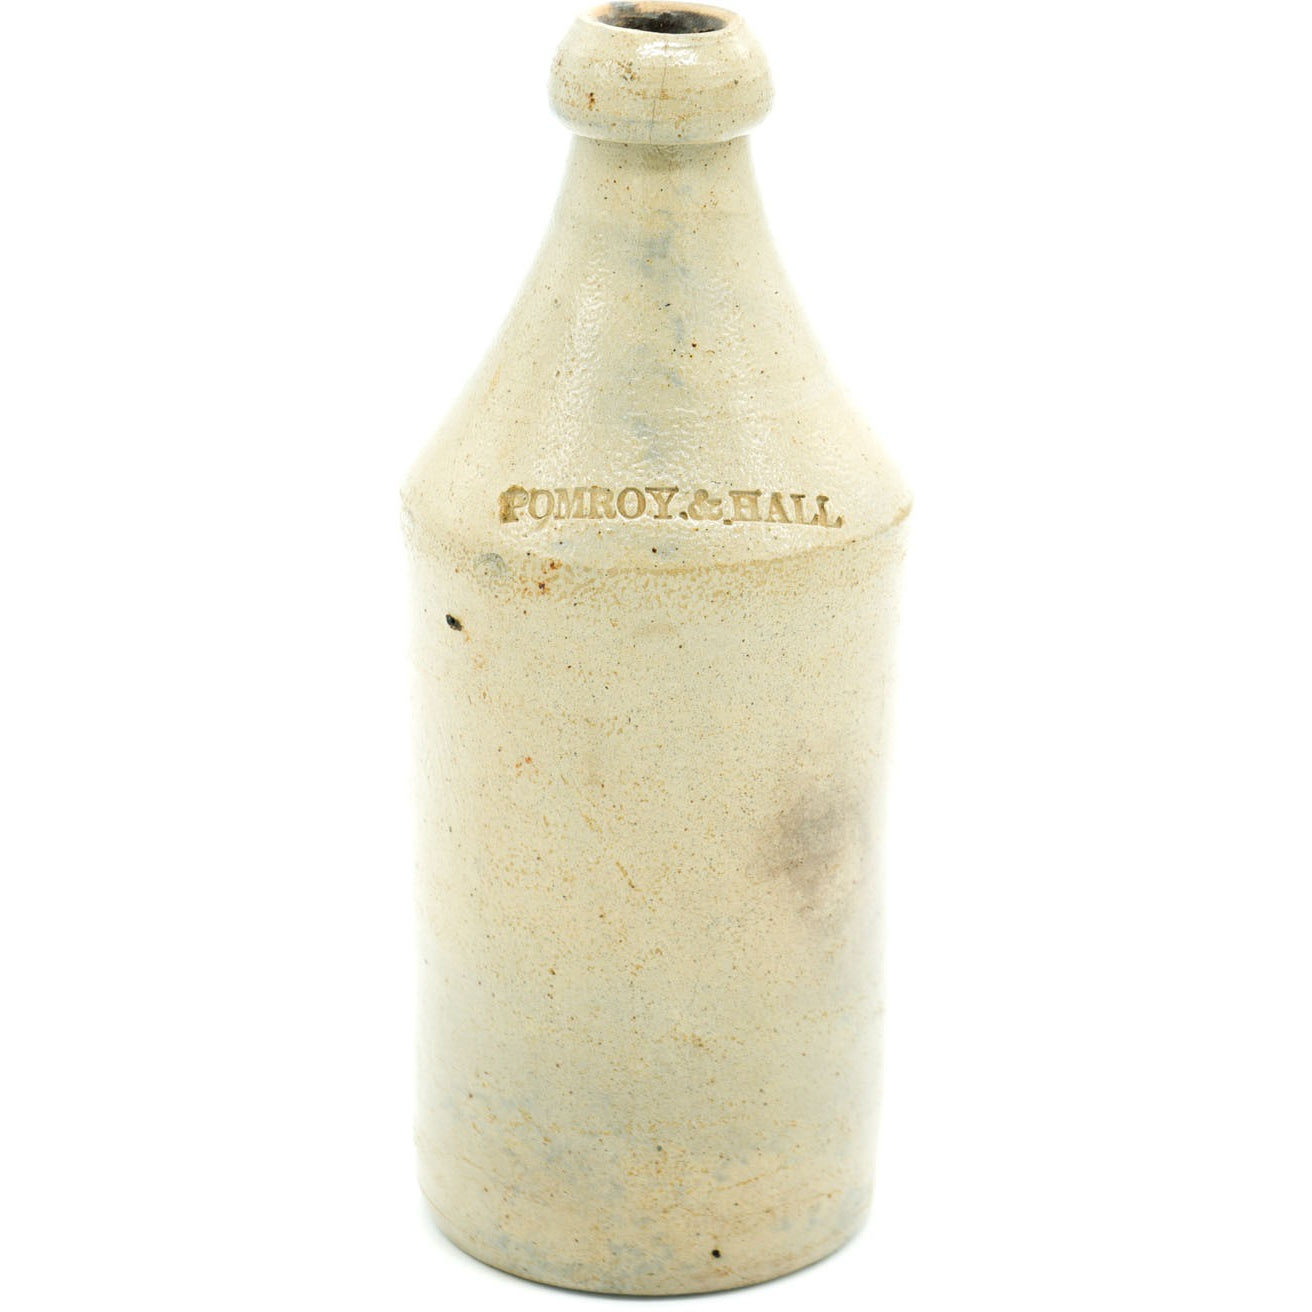 1850s Pomroy & Hall Stoneware Beer Bottle